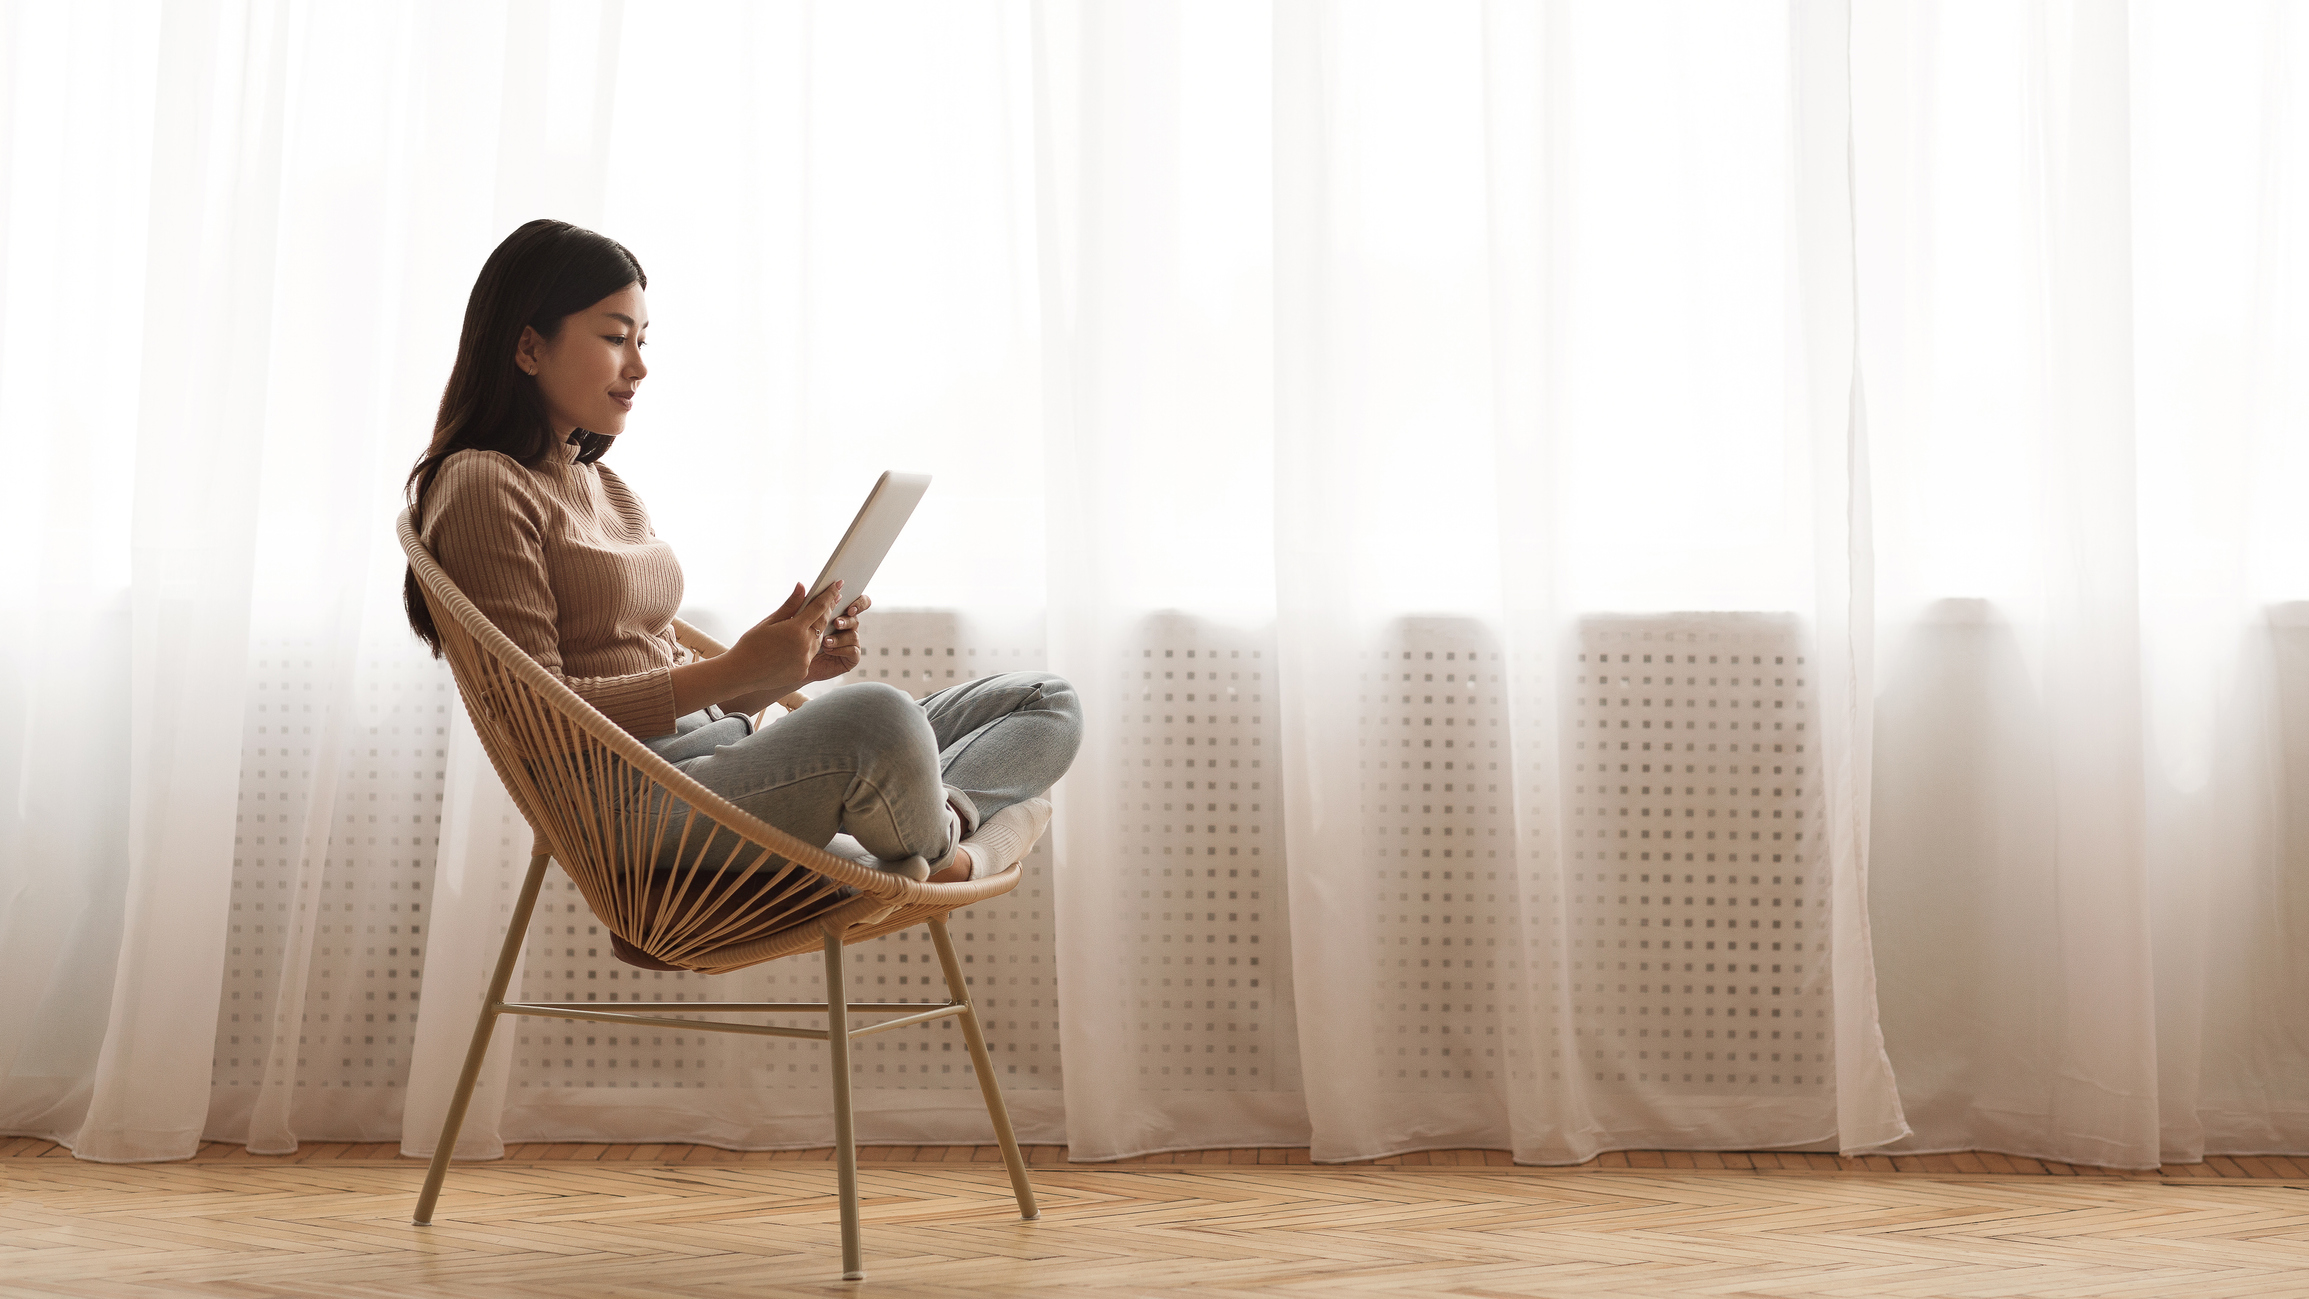 young woman reading an ebook in a wicker chair in minimalist apartment